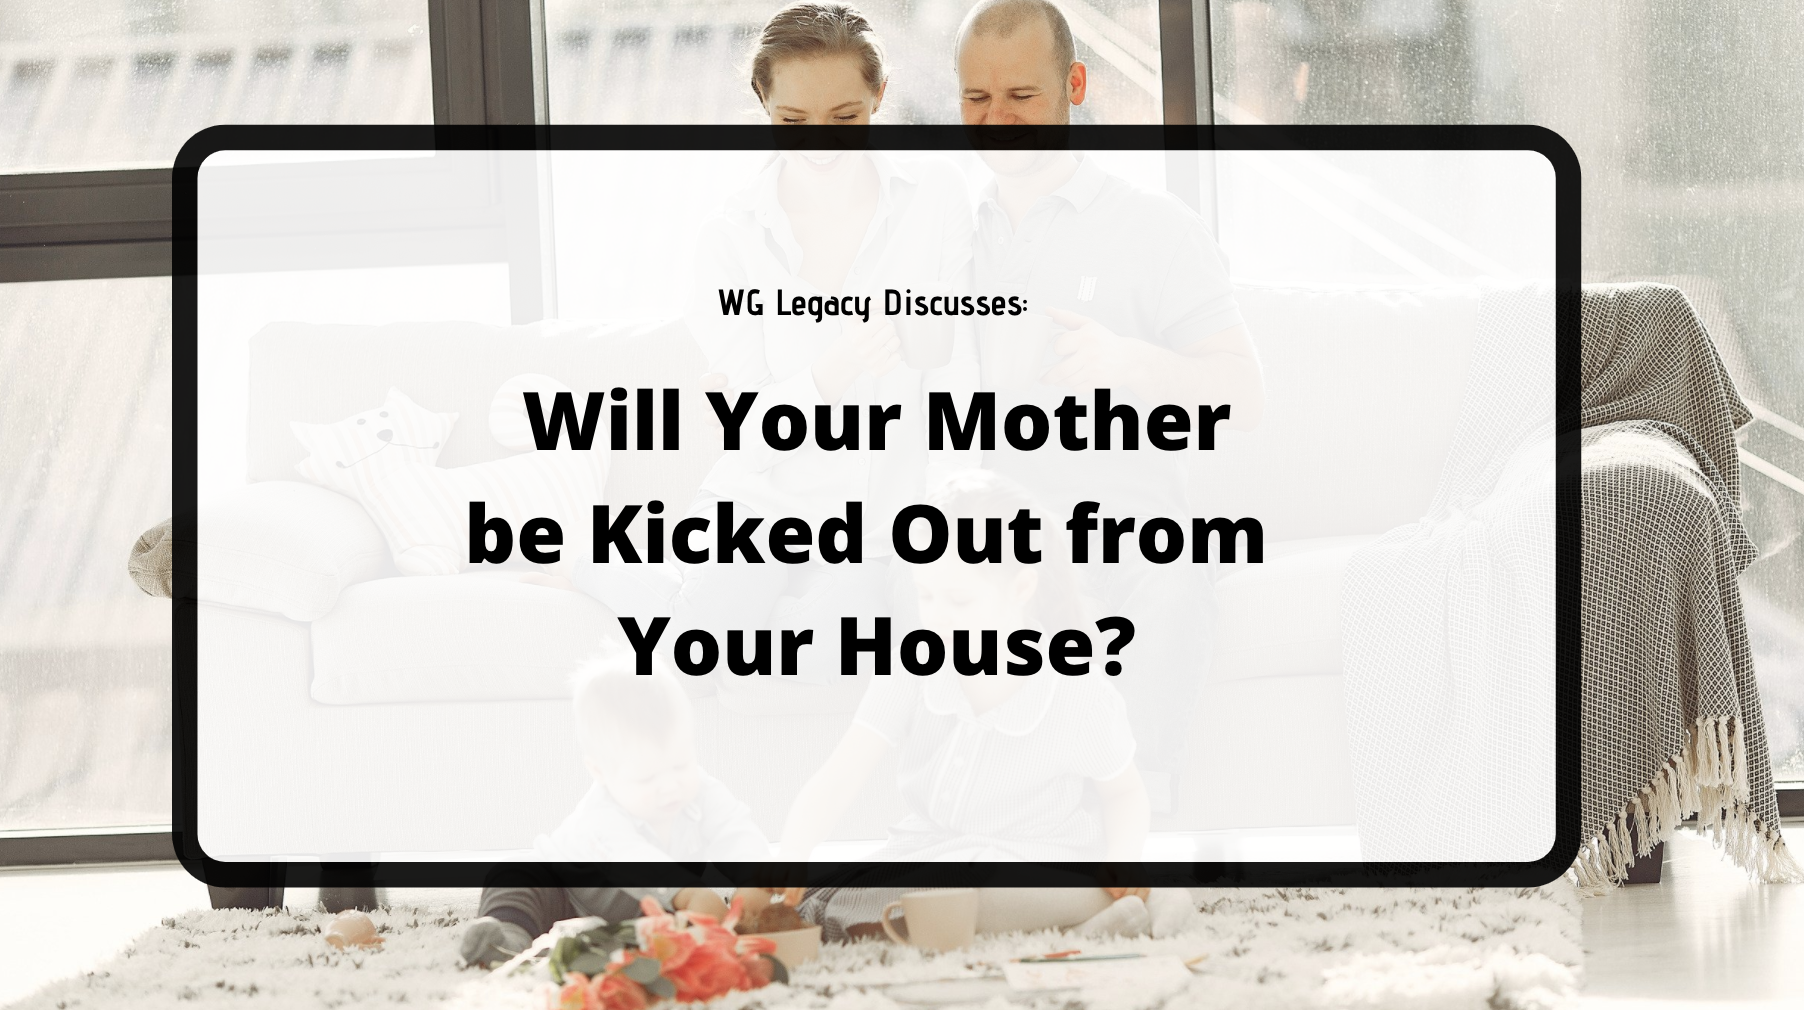 Will Your Mother be Kicked Out from Your House?